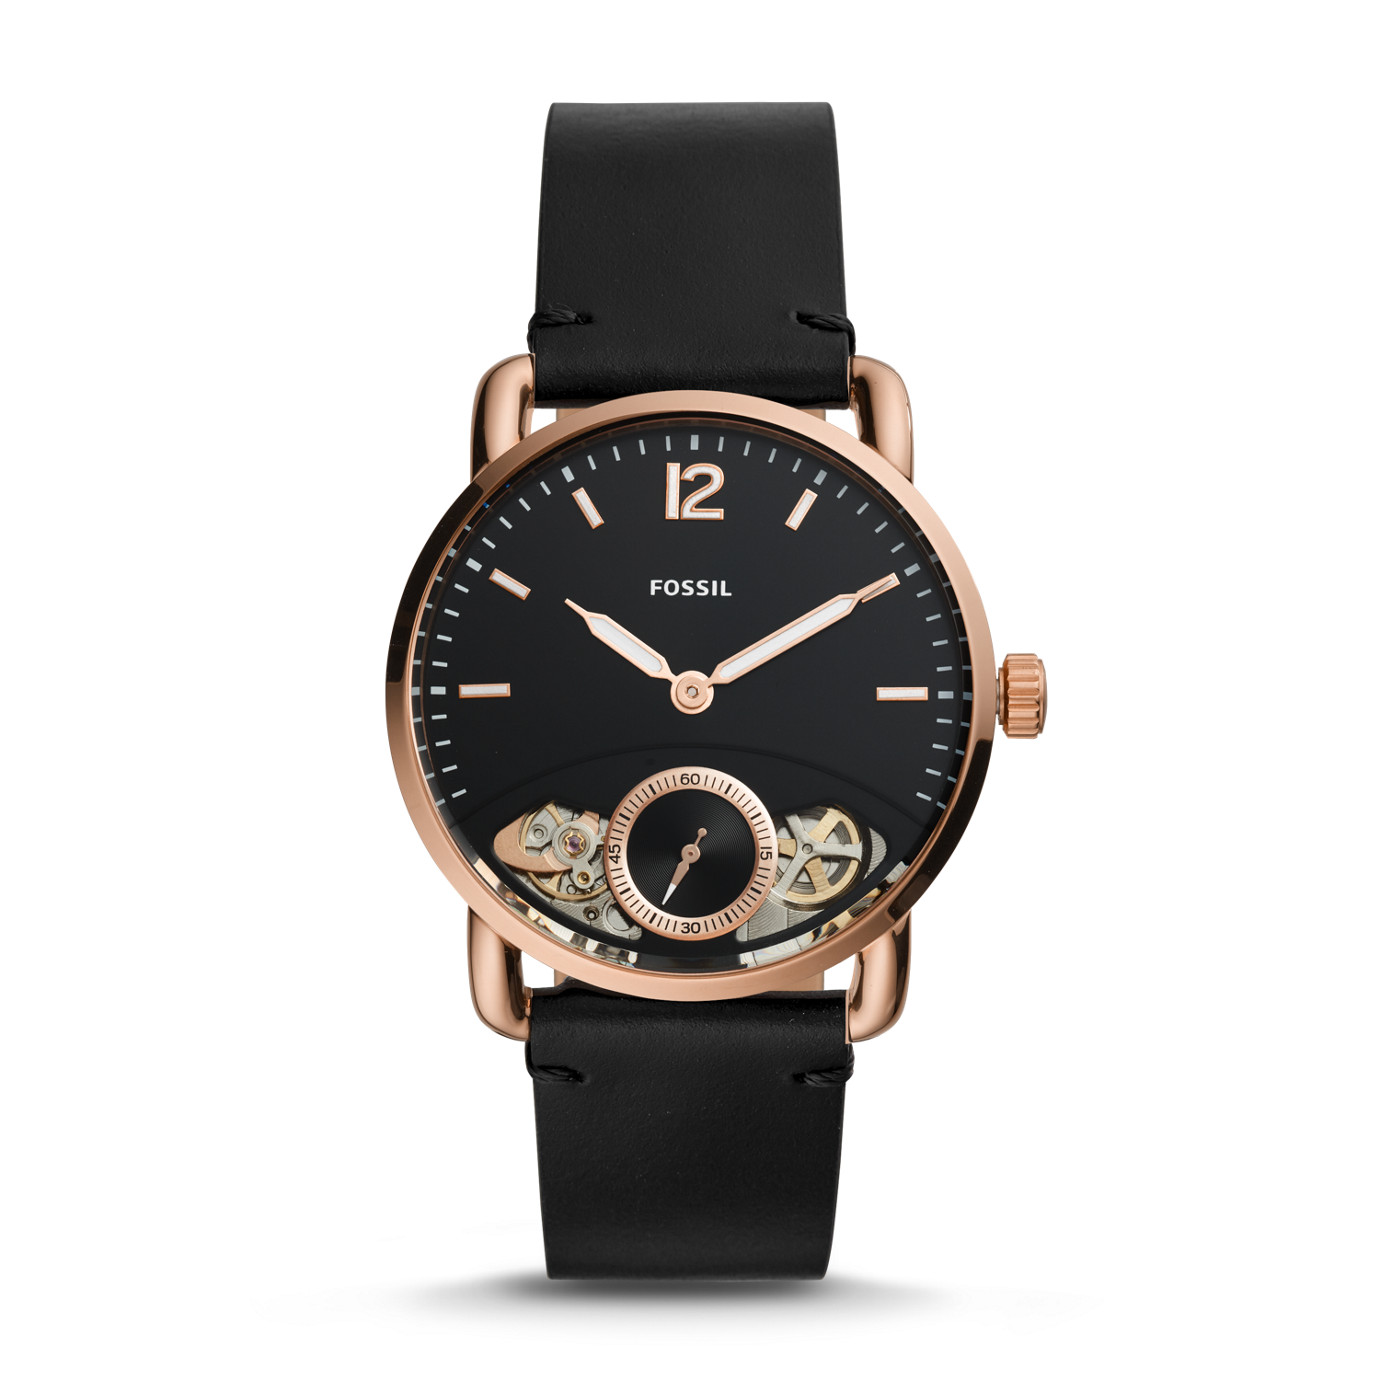 The Commuter Twist Black Leather Watch